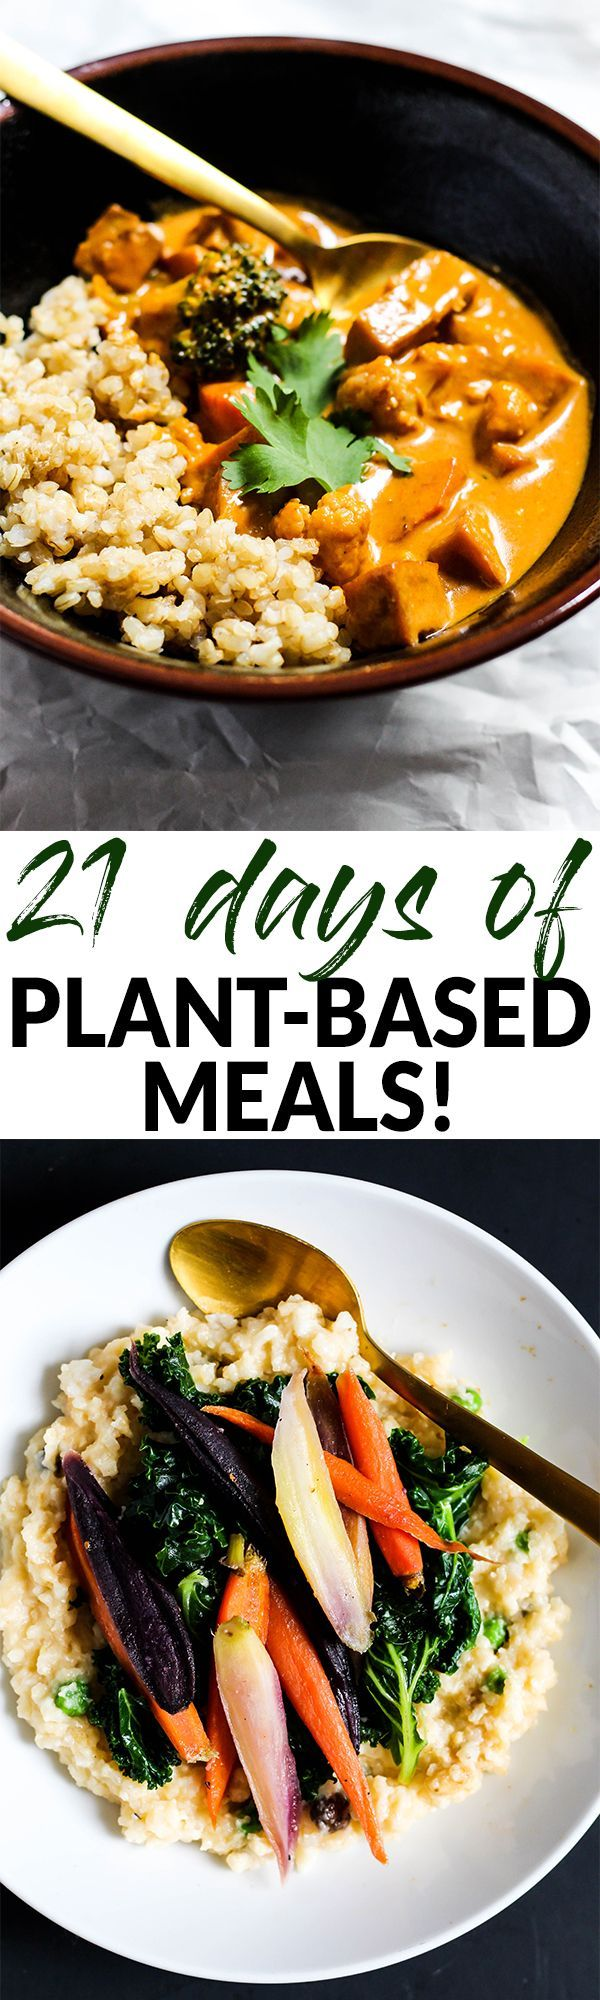 If you want to eat plant-based but don't know where to start, this 21-day challenge full of delicious meals and inspiration will kickstart your journey!